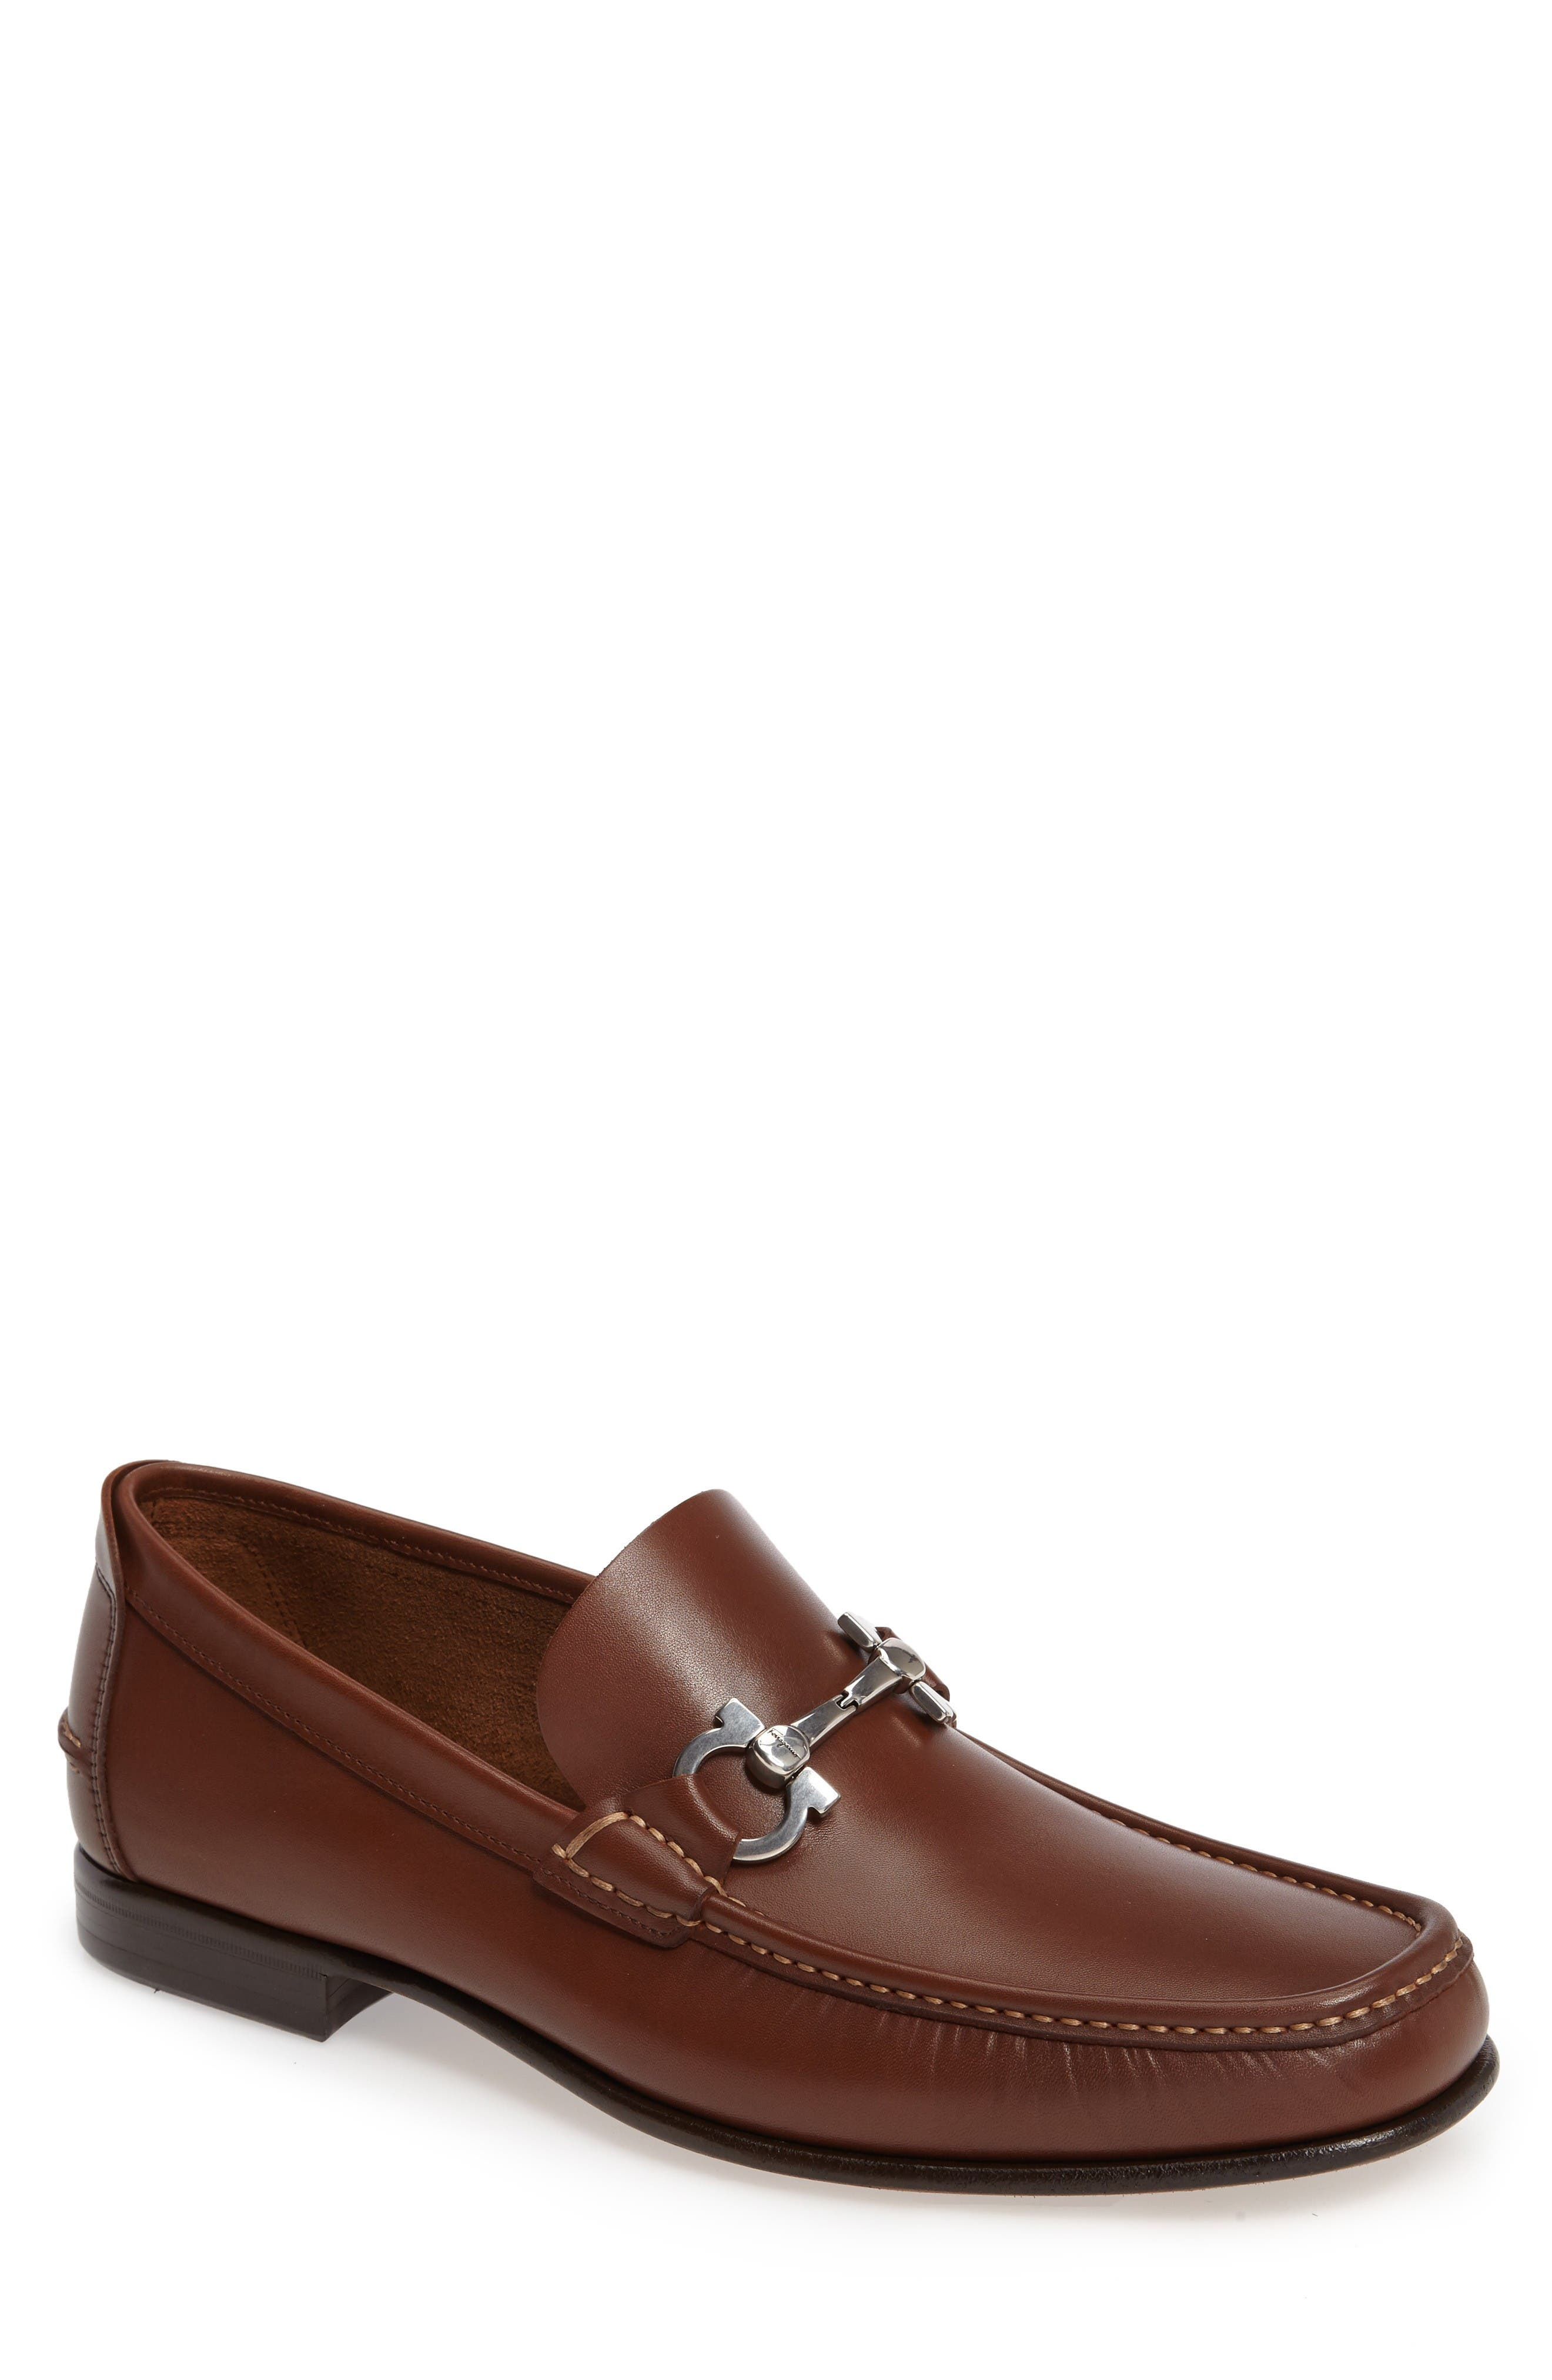 Bit Loafer,                             Main thumbnail 1, color,                             Brown Leather